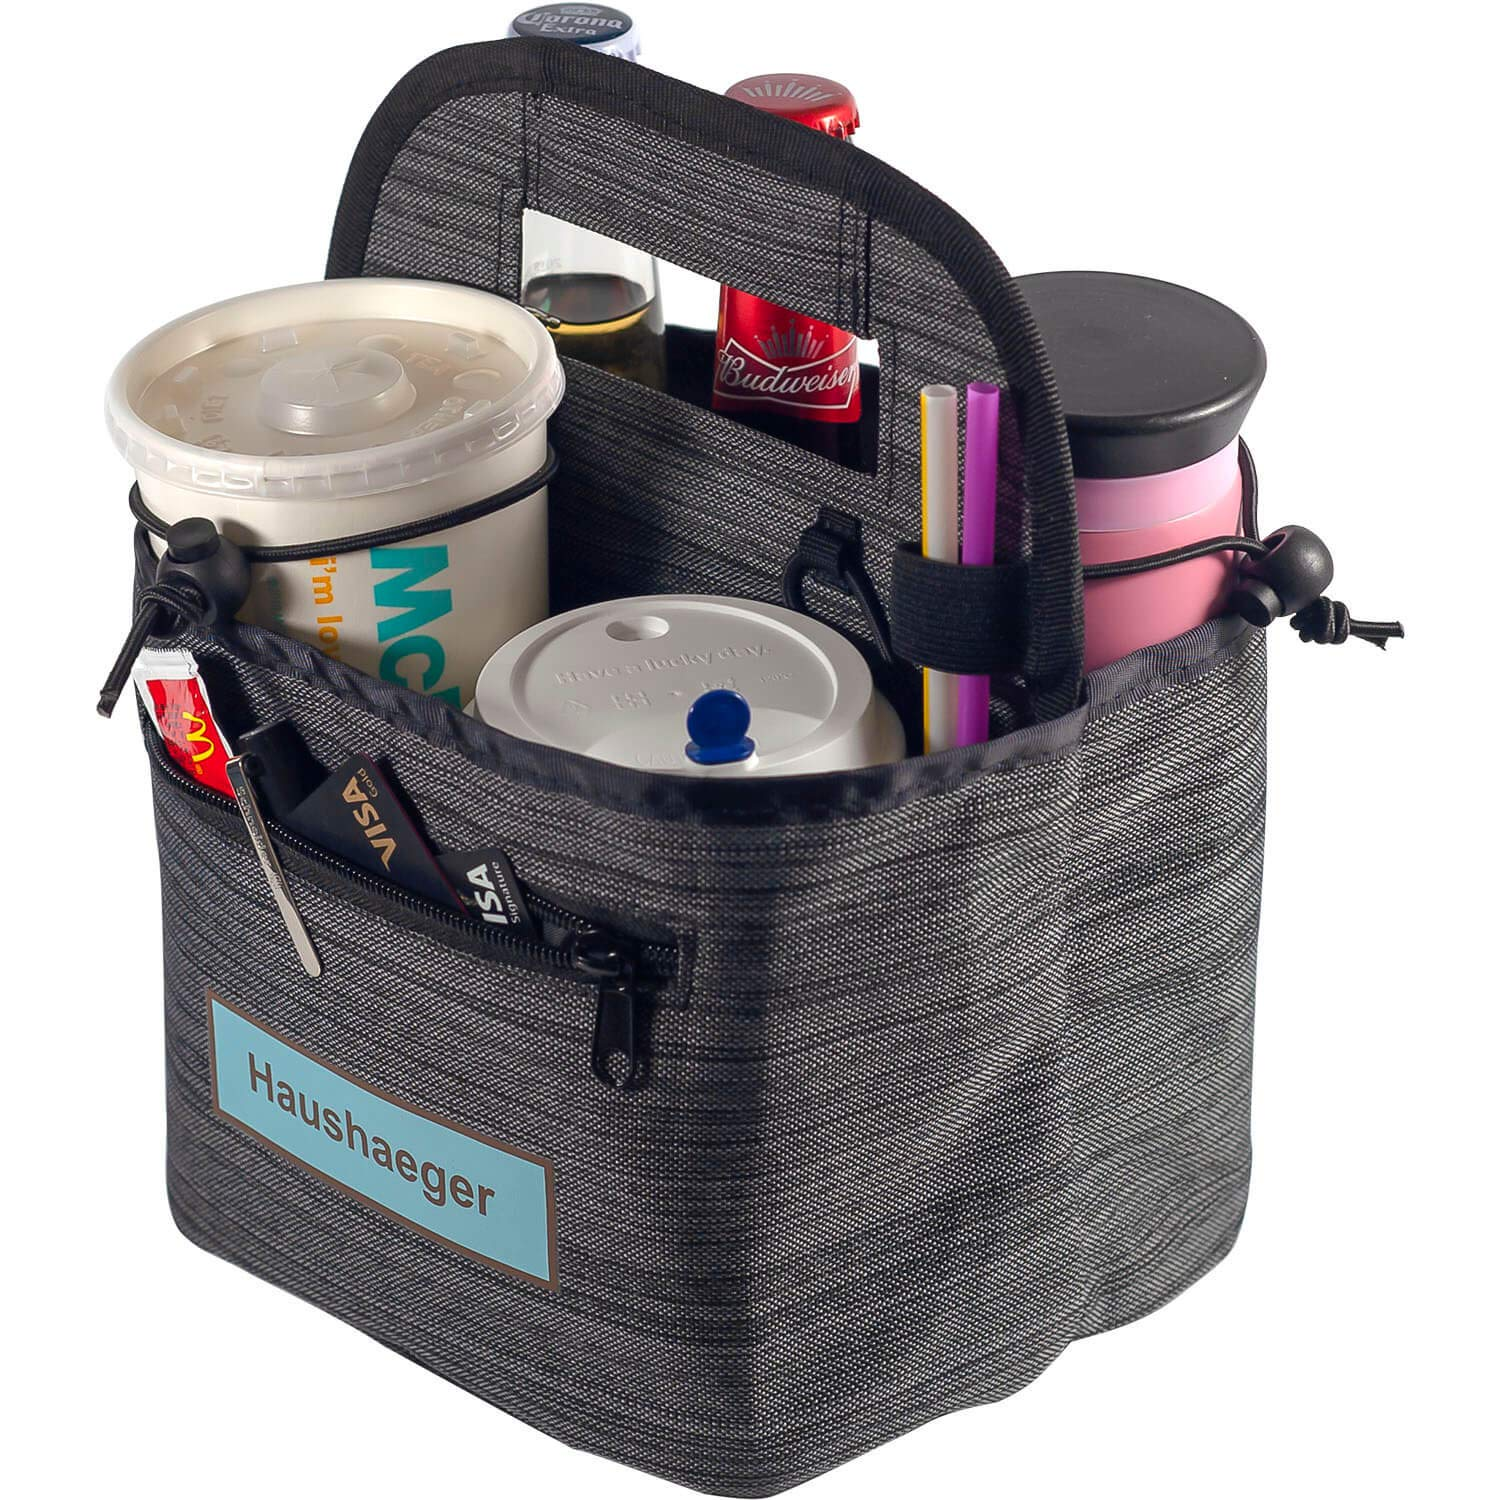 Portable Drink Carrier and Reusable Coffee Cup Holder On-The-go by Haushaeger - Foldable Insulated Travel Beverage Tote Bag with Handle for Delivery - Thick (Dark Grey)